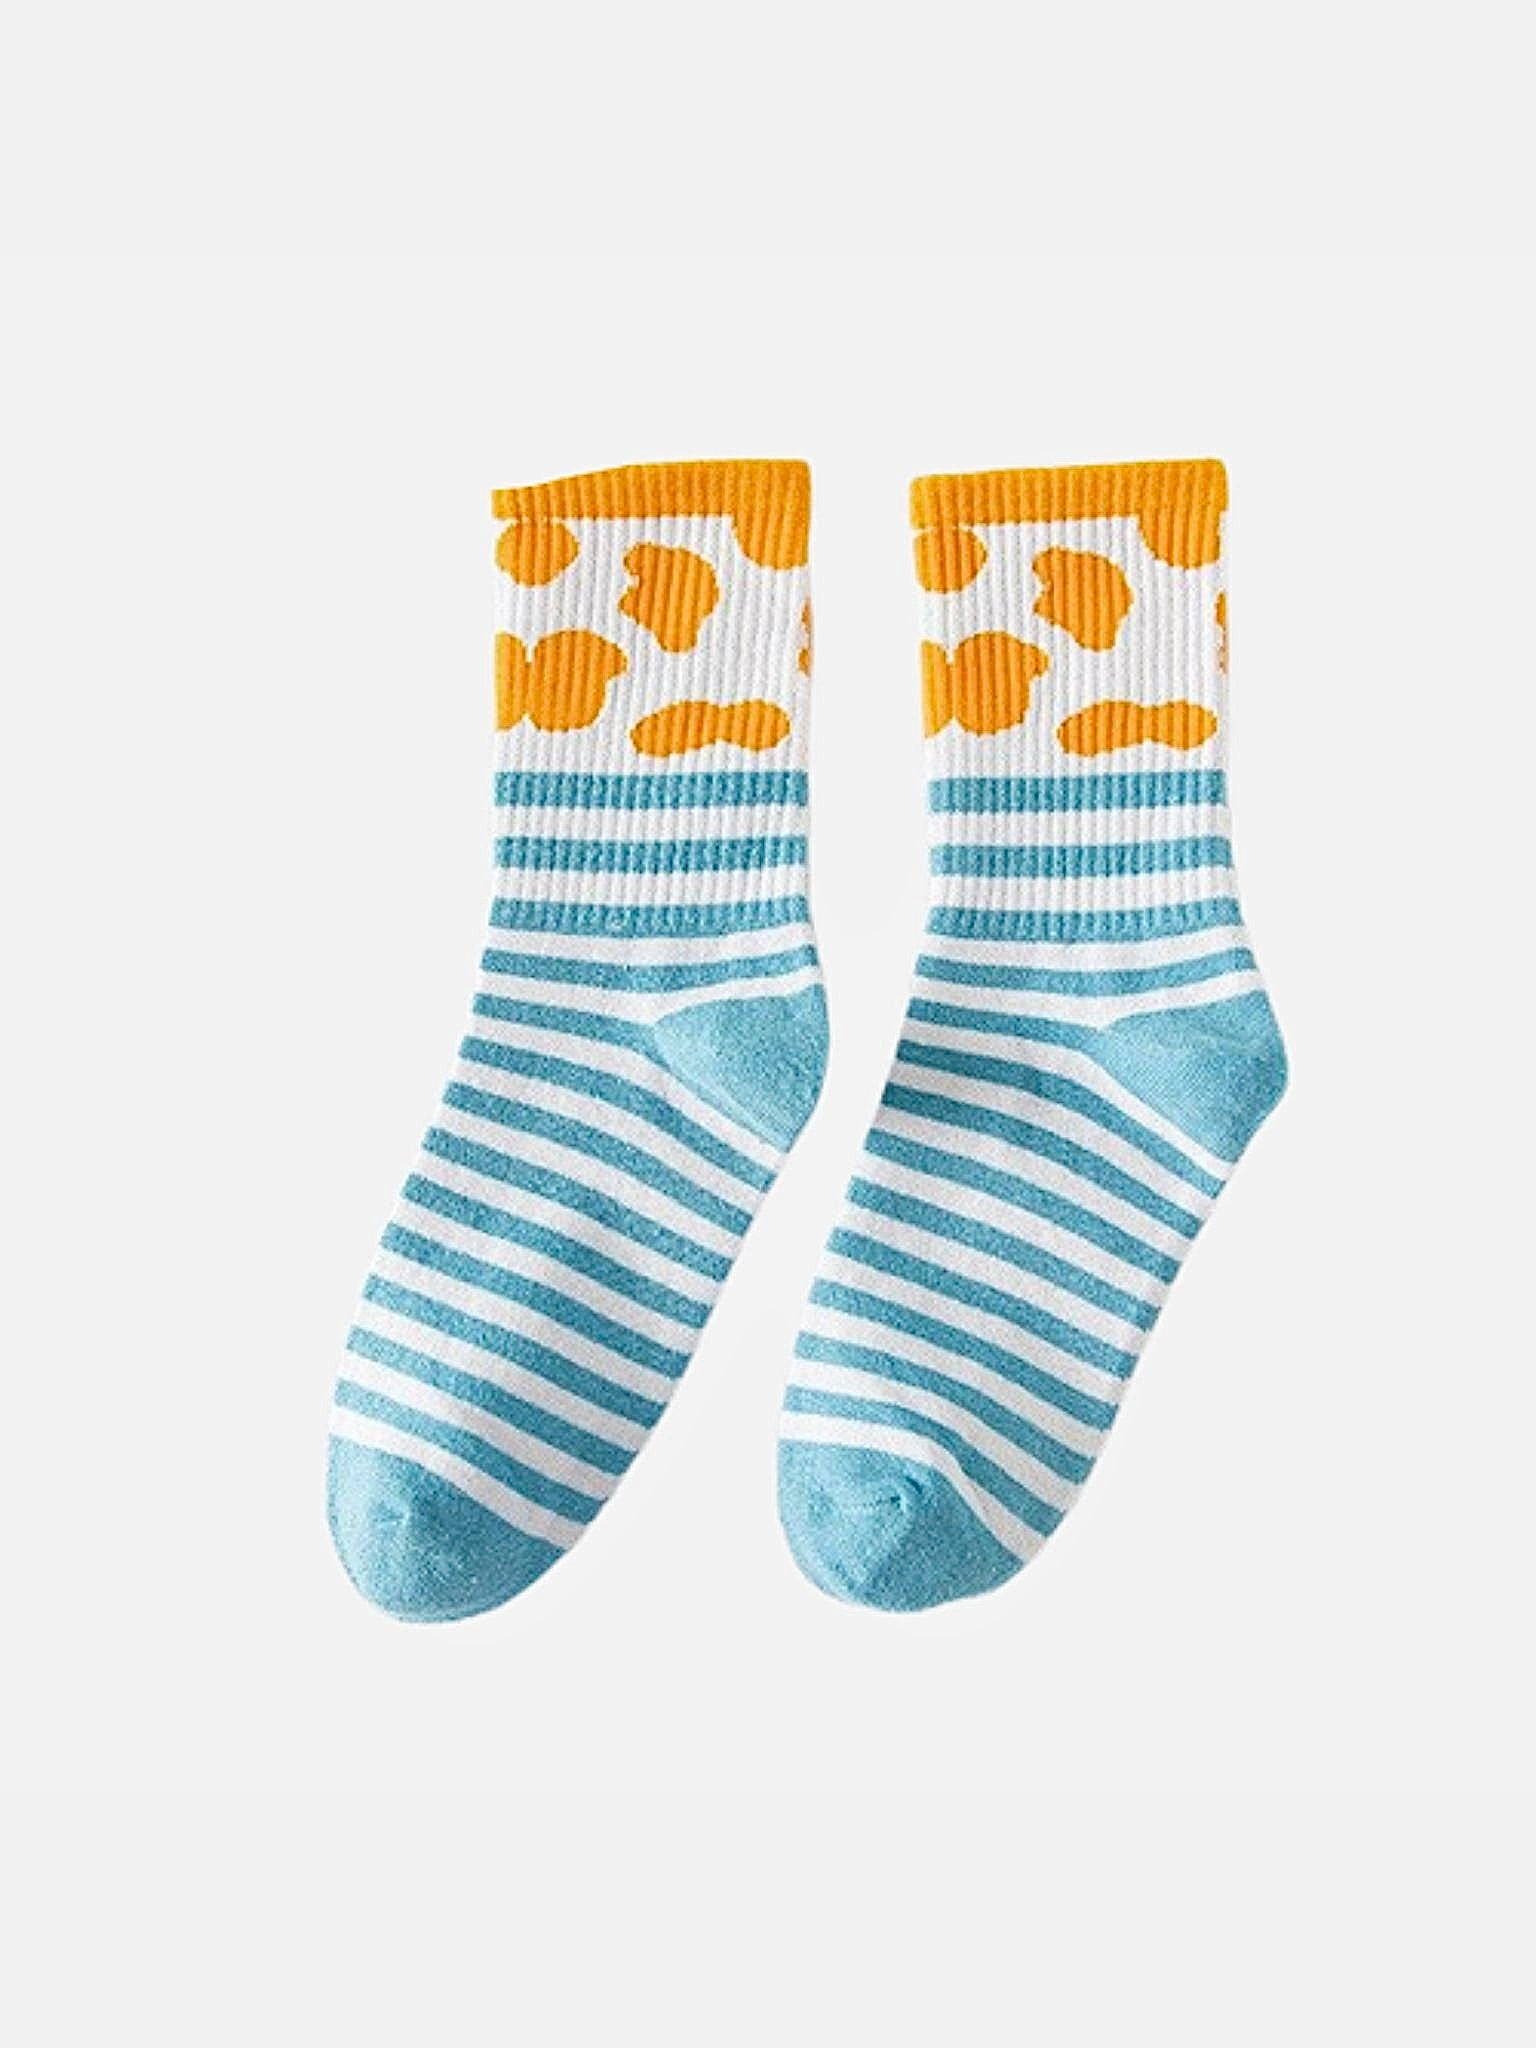 Rib Crew Socks      Cute Ribbed Cotton Light Blue Stripe White Cow Pattern print Street Fashion Cotton Socks footwear Trend